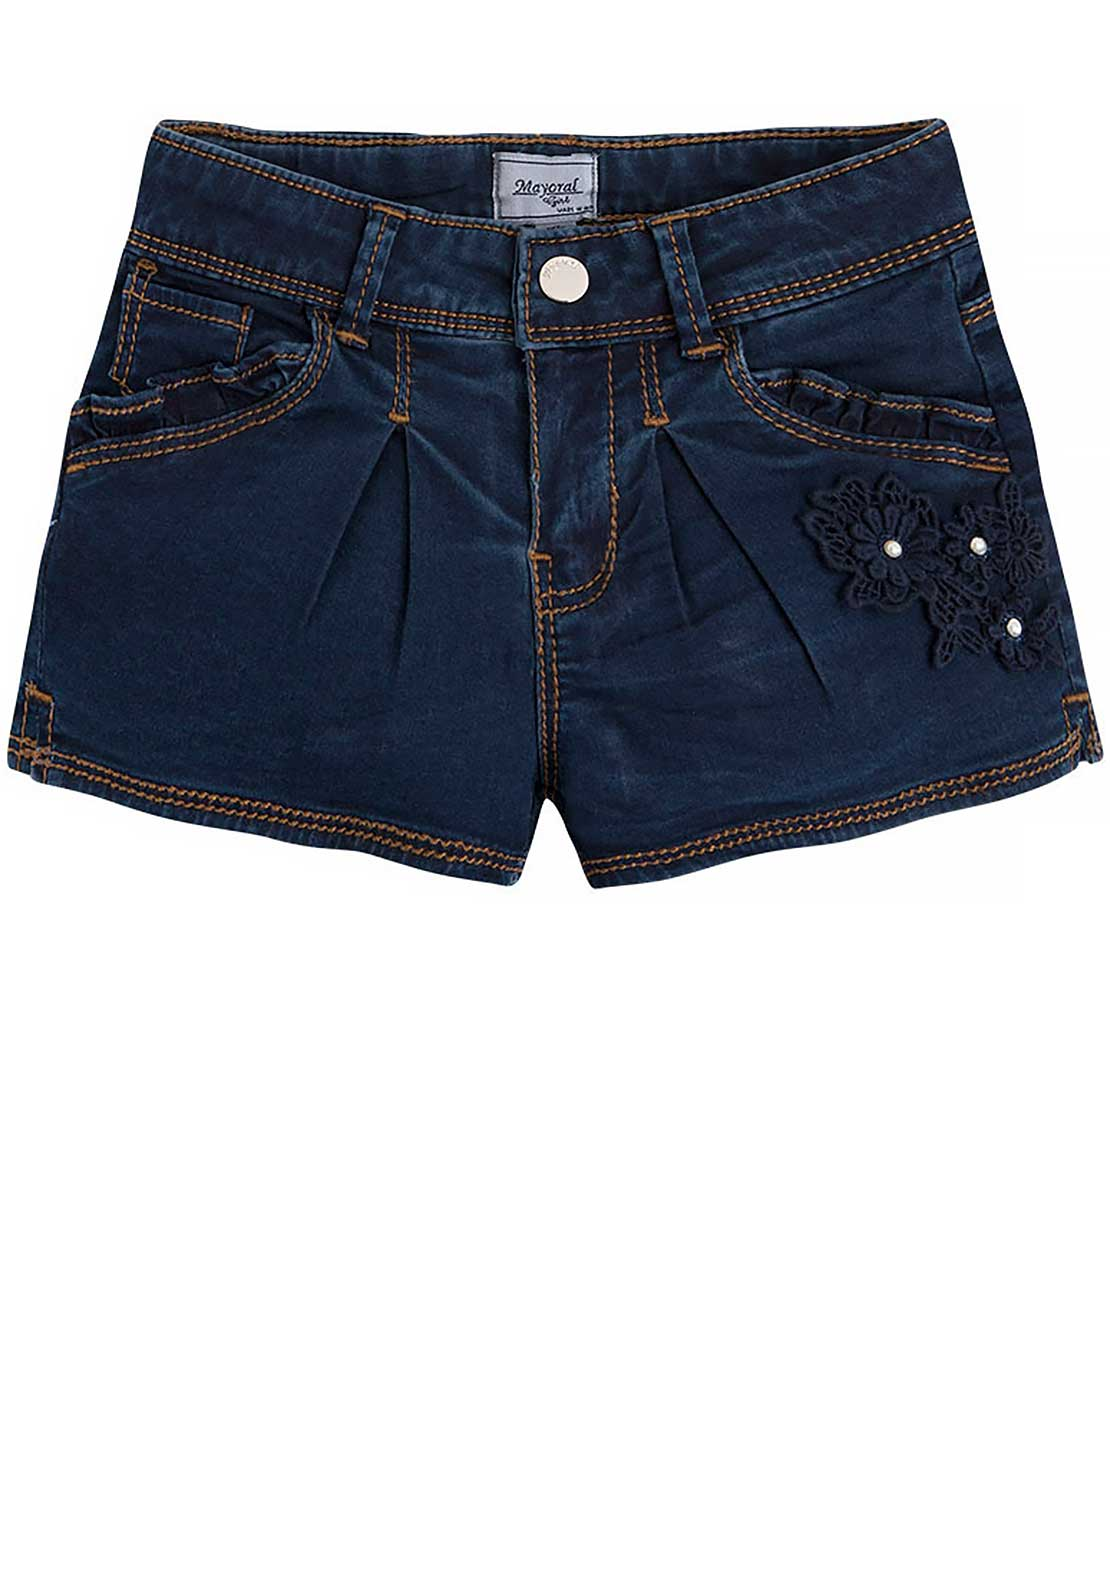 Mayoral Girls Embellished Stretch Denim Shorts, Dark Blue